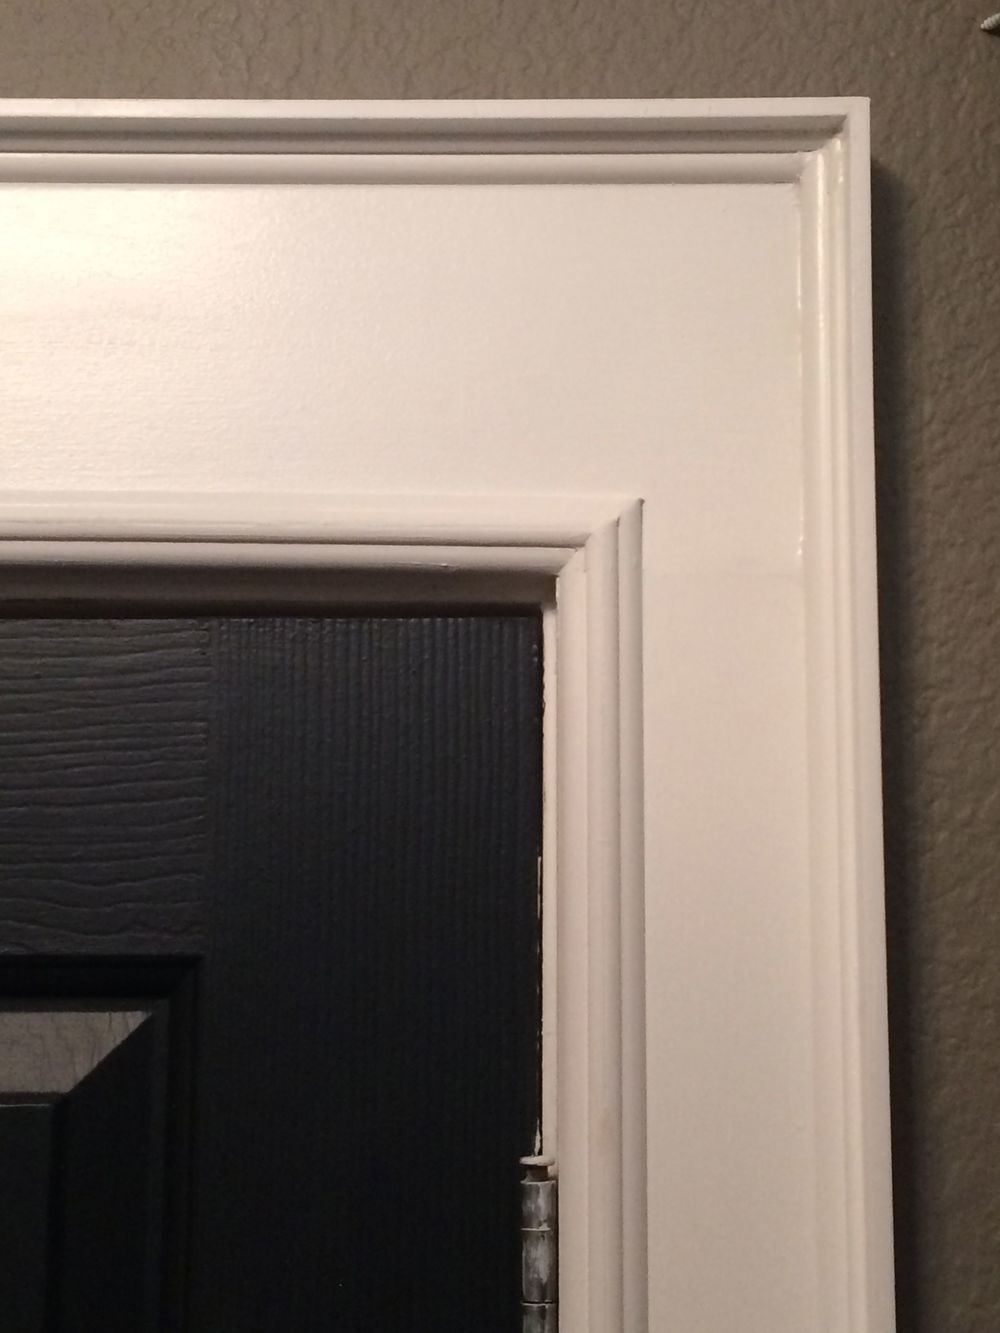 Step 9: Spruce up the trim around the doors.